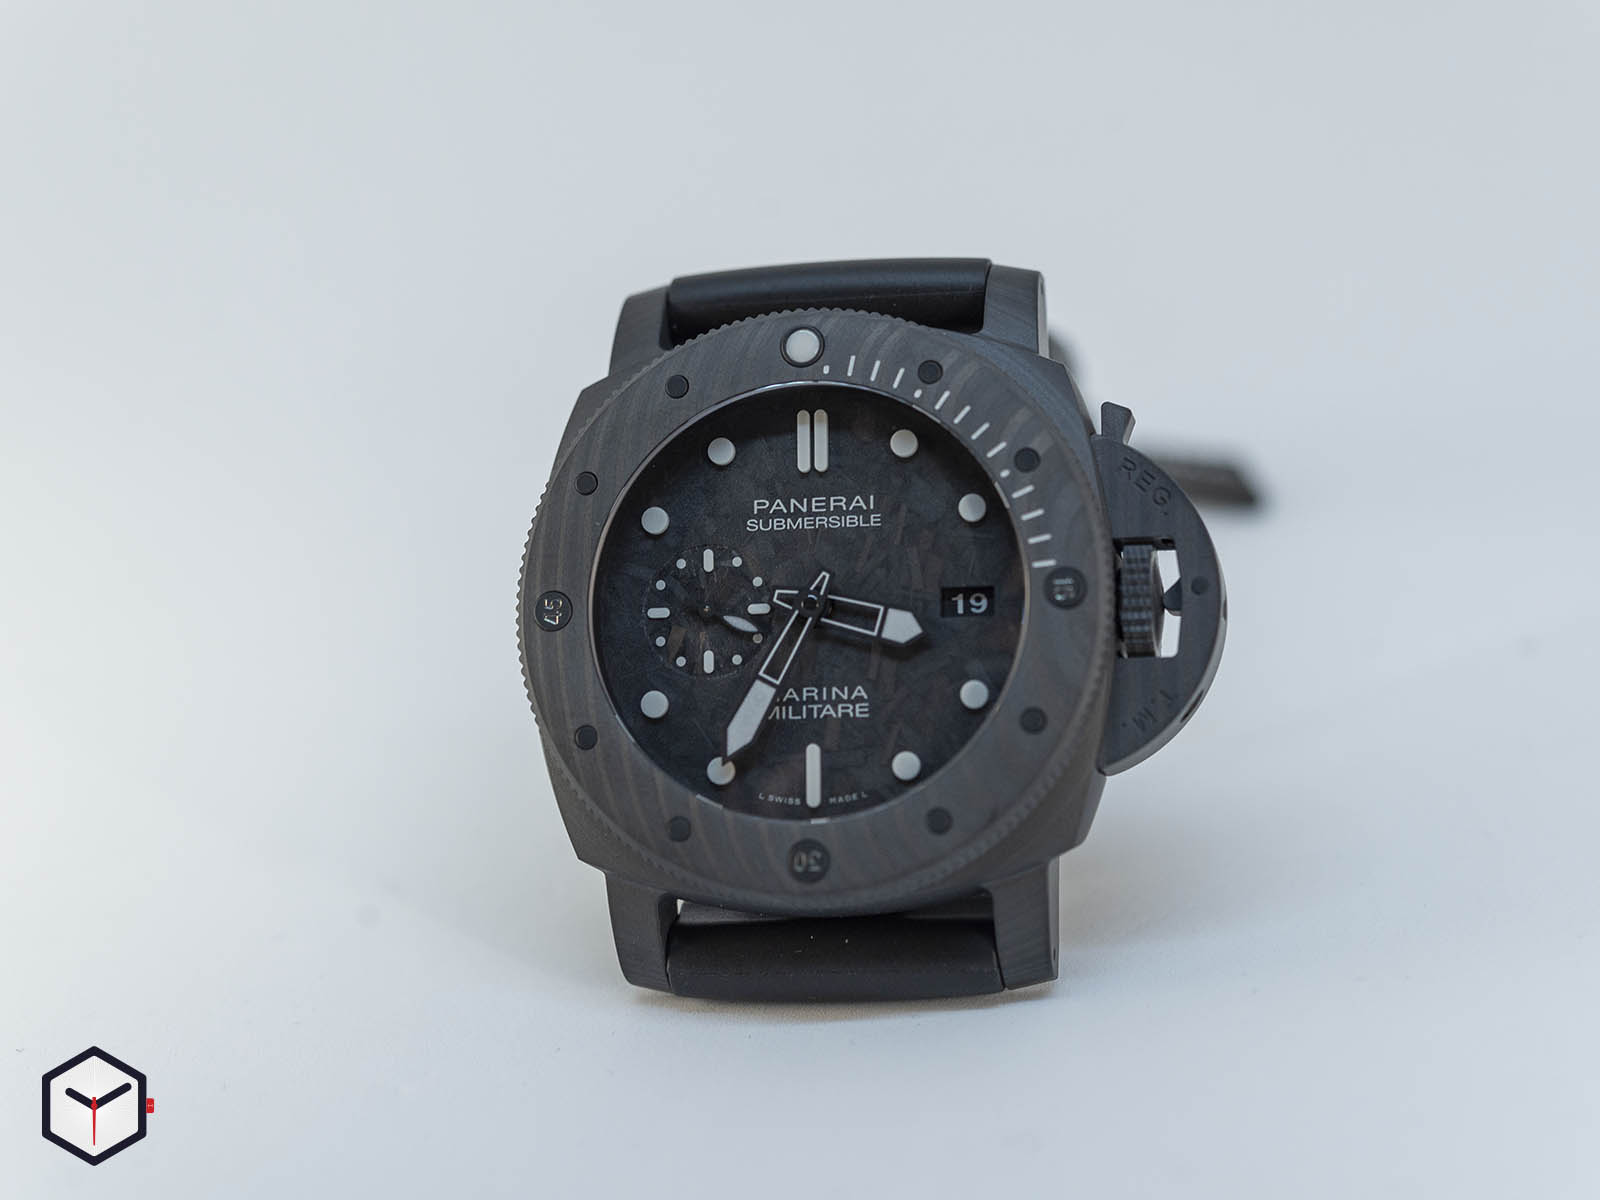 pam00979-officine-panerai-submersible-marina-militare-carbotech-7-.jpg